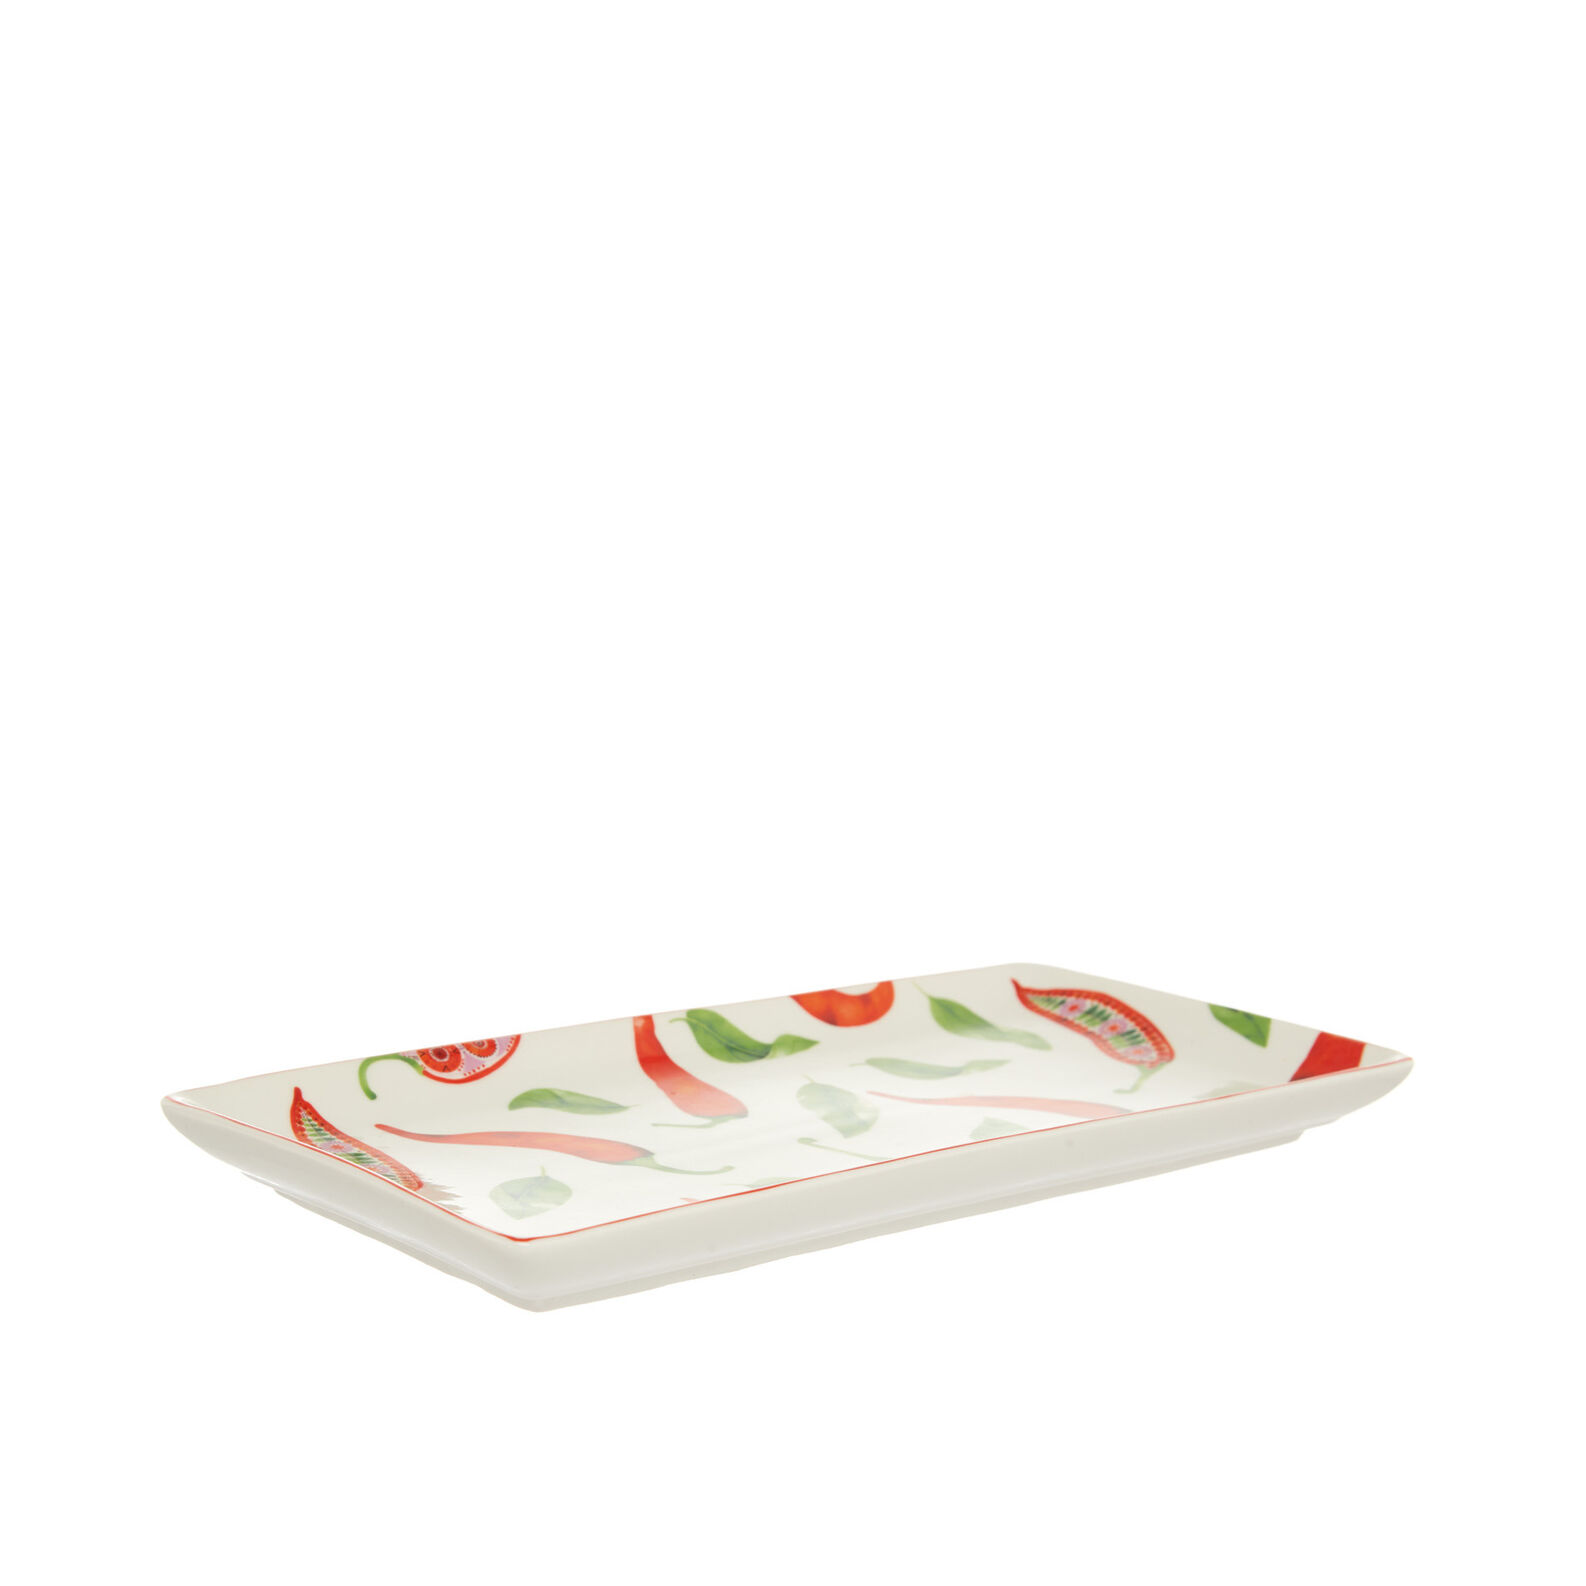 Tray in new bone China with chilli peppers decoration